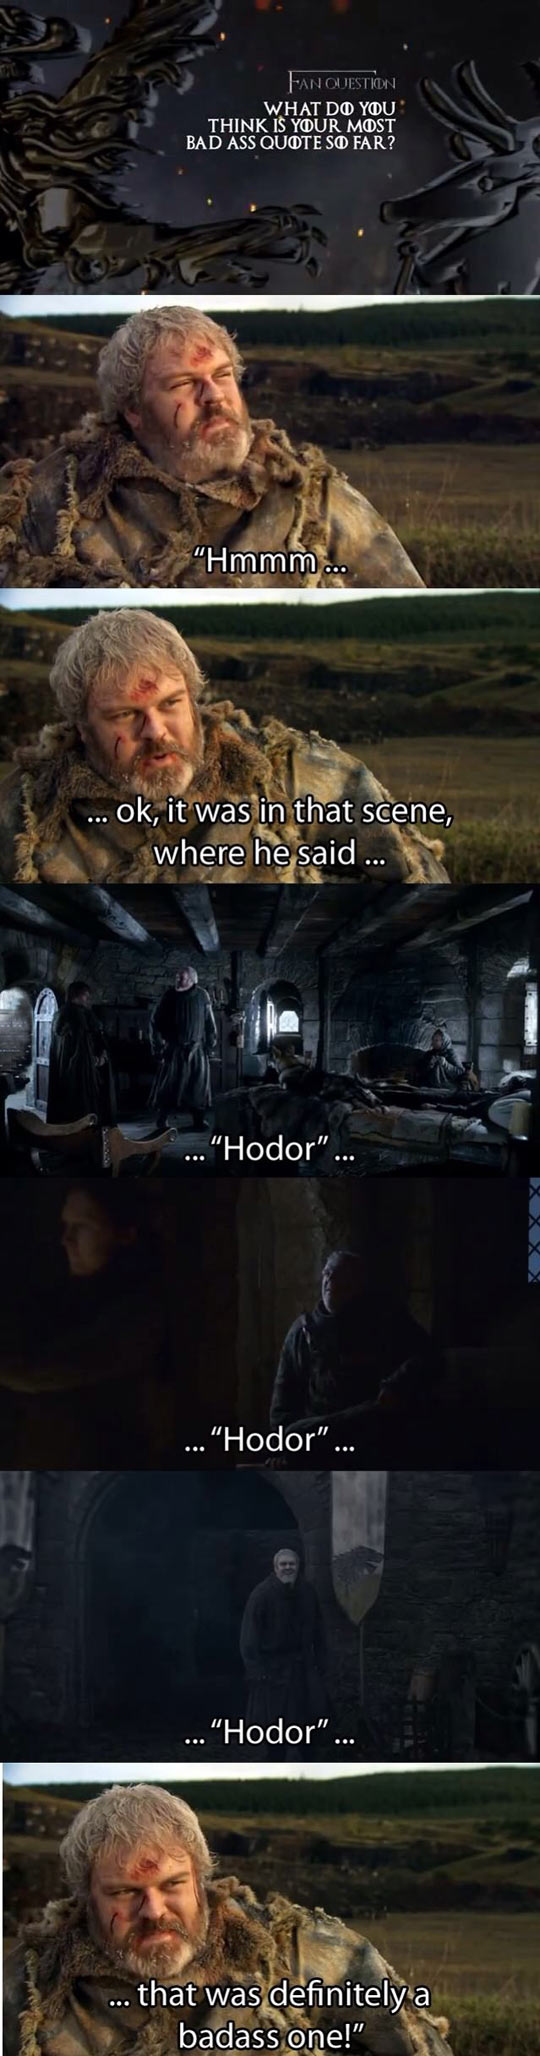 funny-GoT-quote-Hodor-character